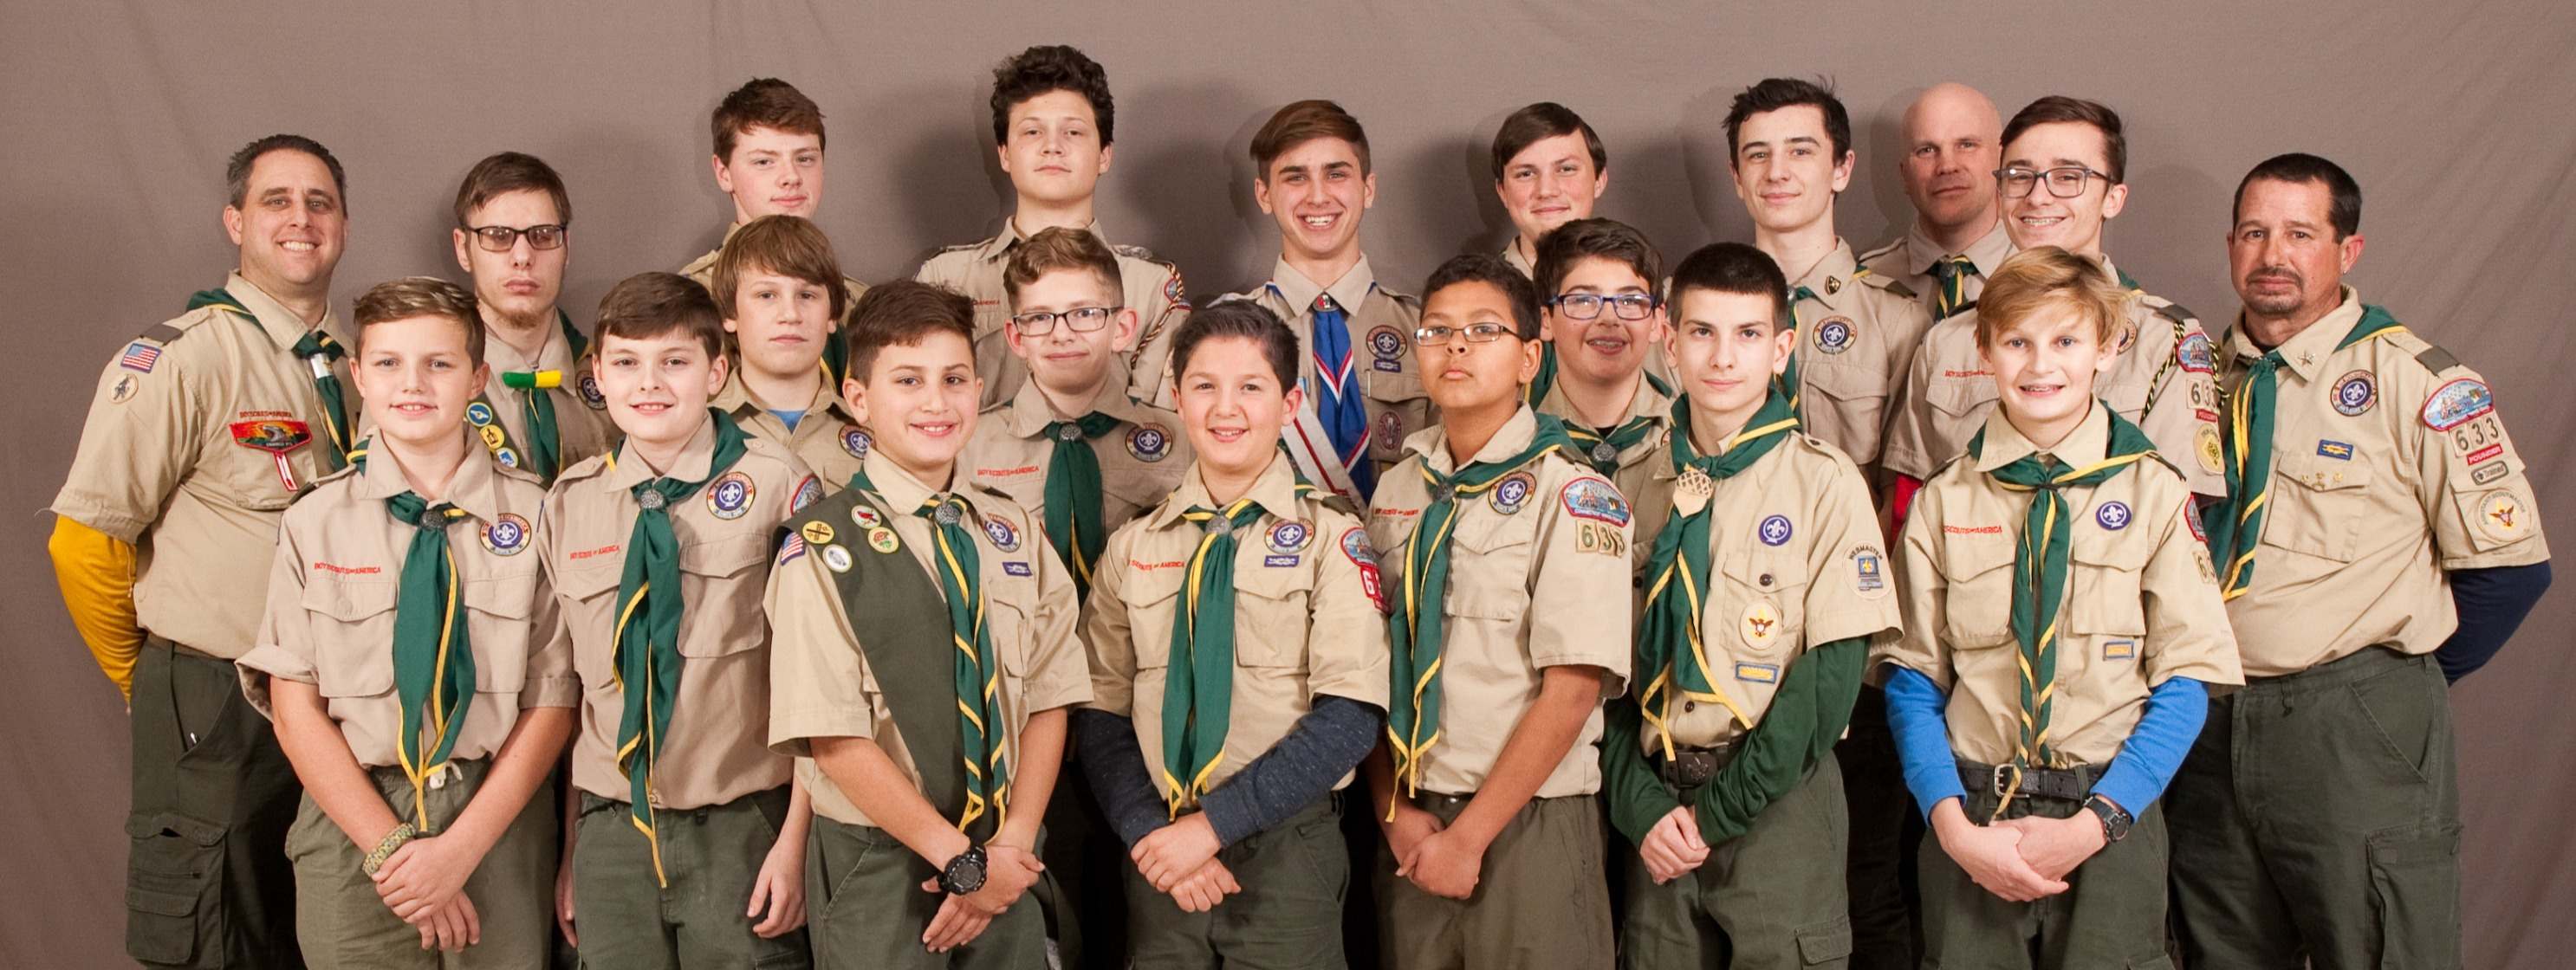 Troop%20633_edited